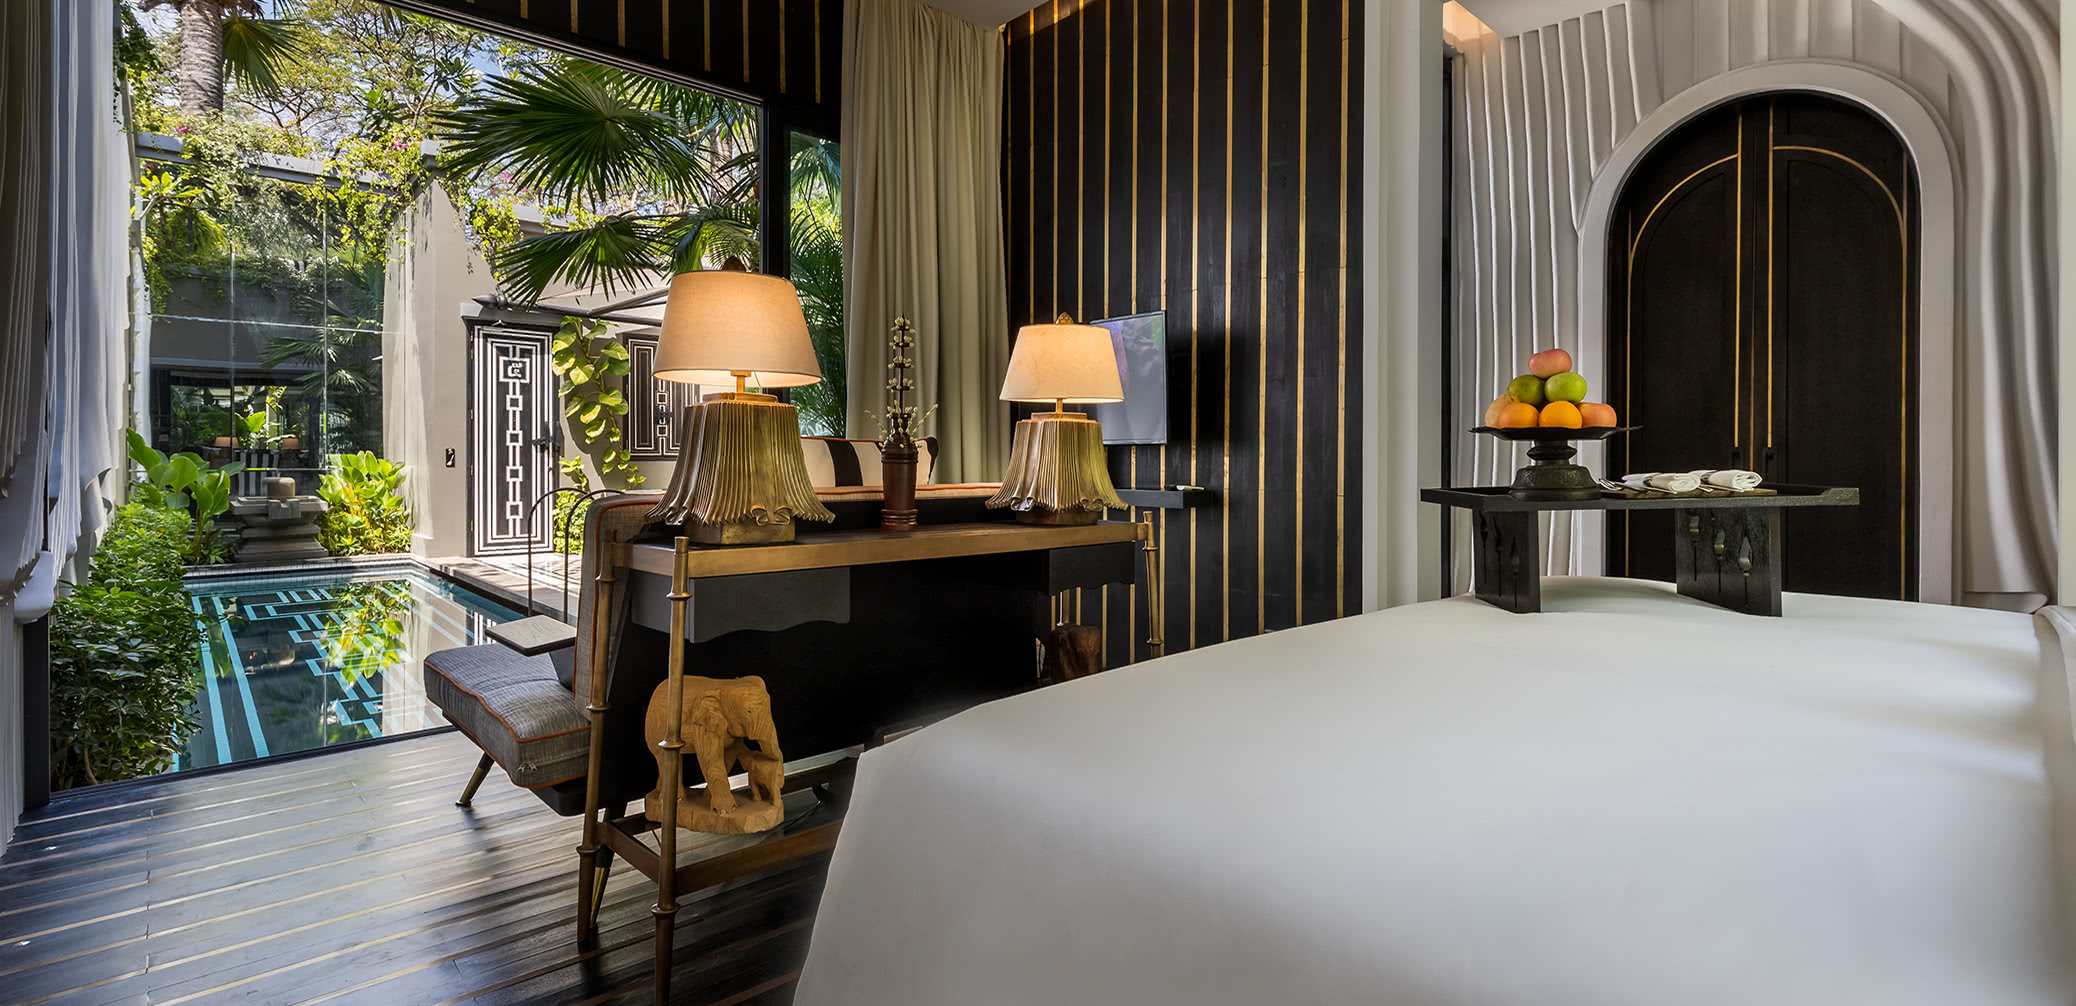 Why Considering the Boutique Hotels Benefits Ideal for Businesses